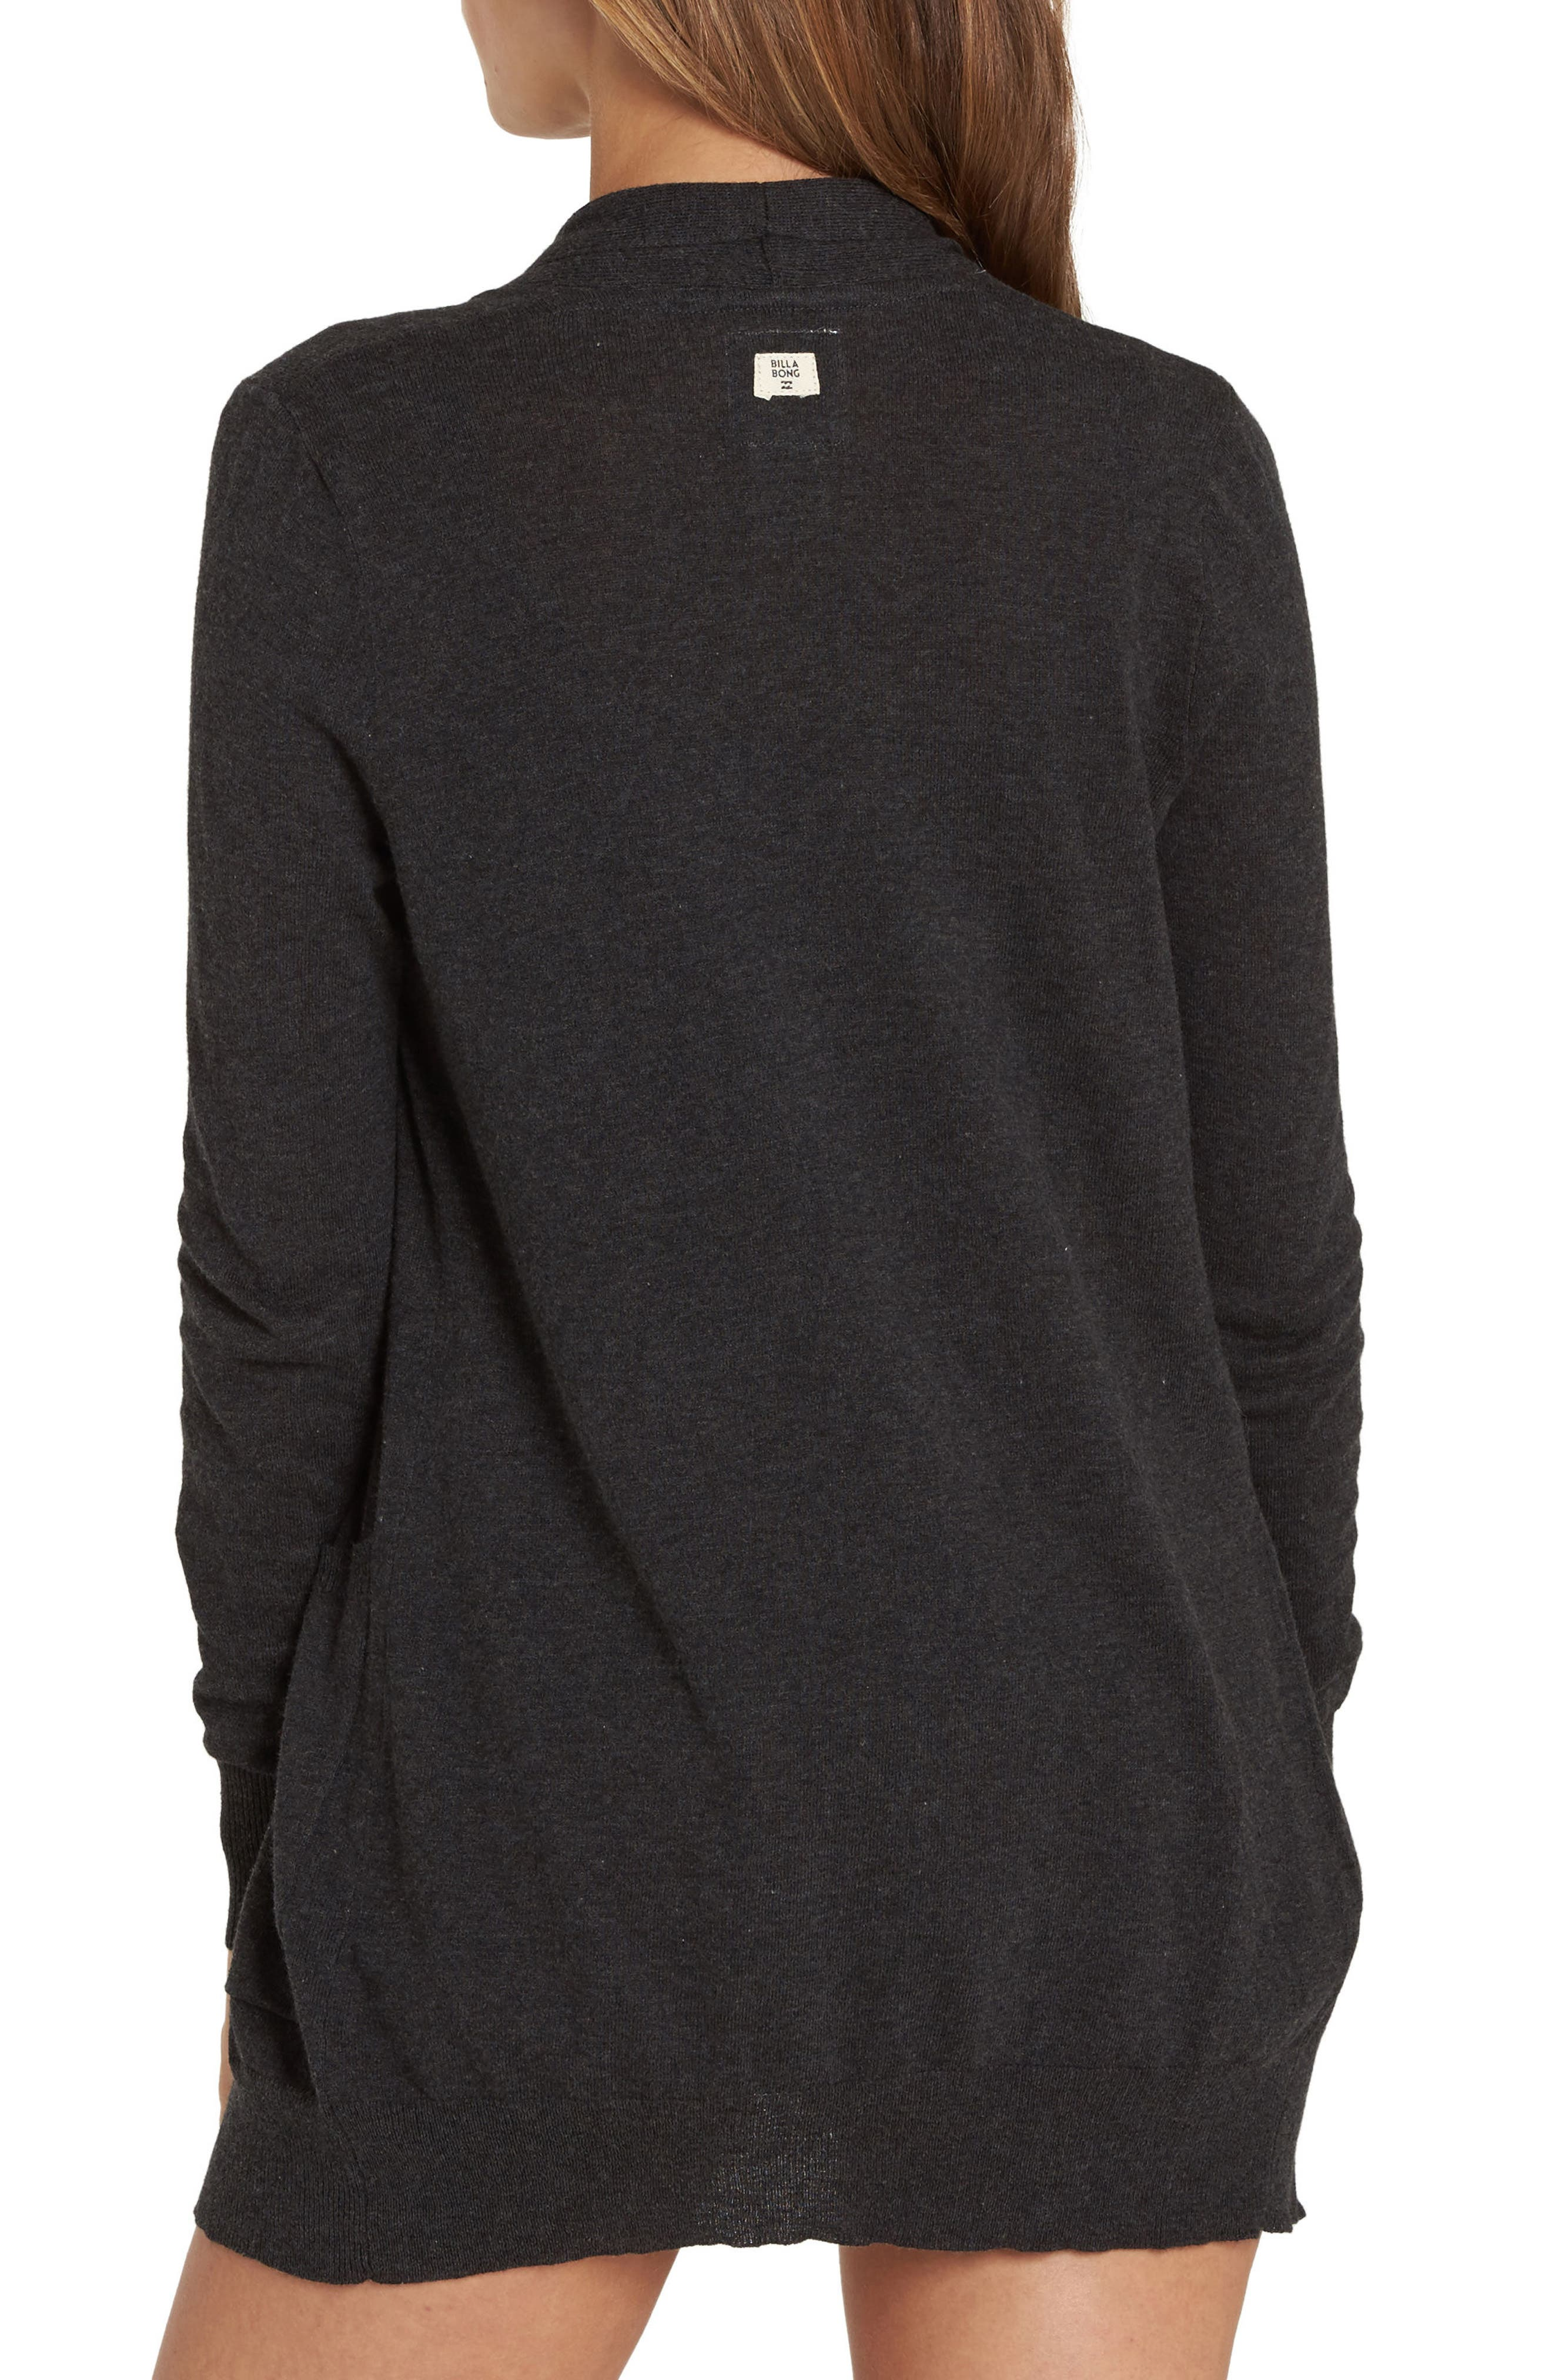 Line Games Sweater,                             Alternate thumbnail 5, color,